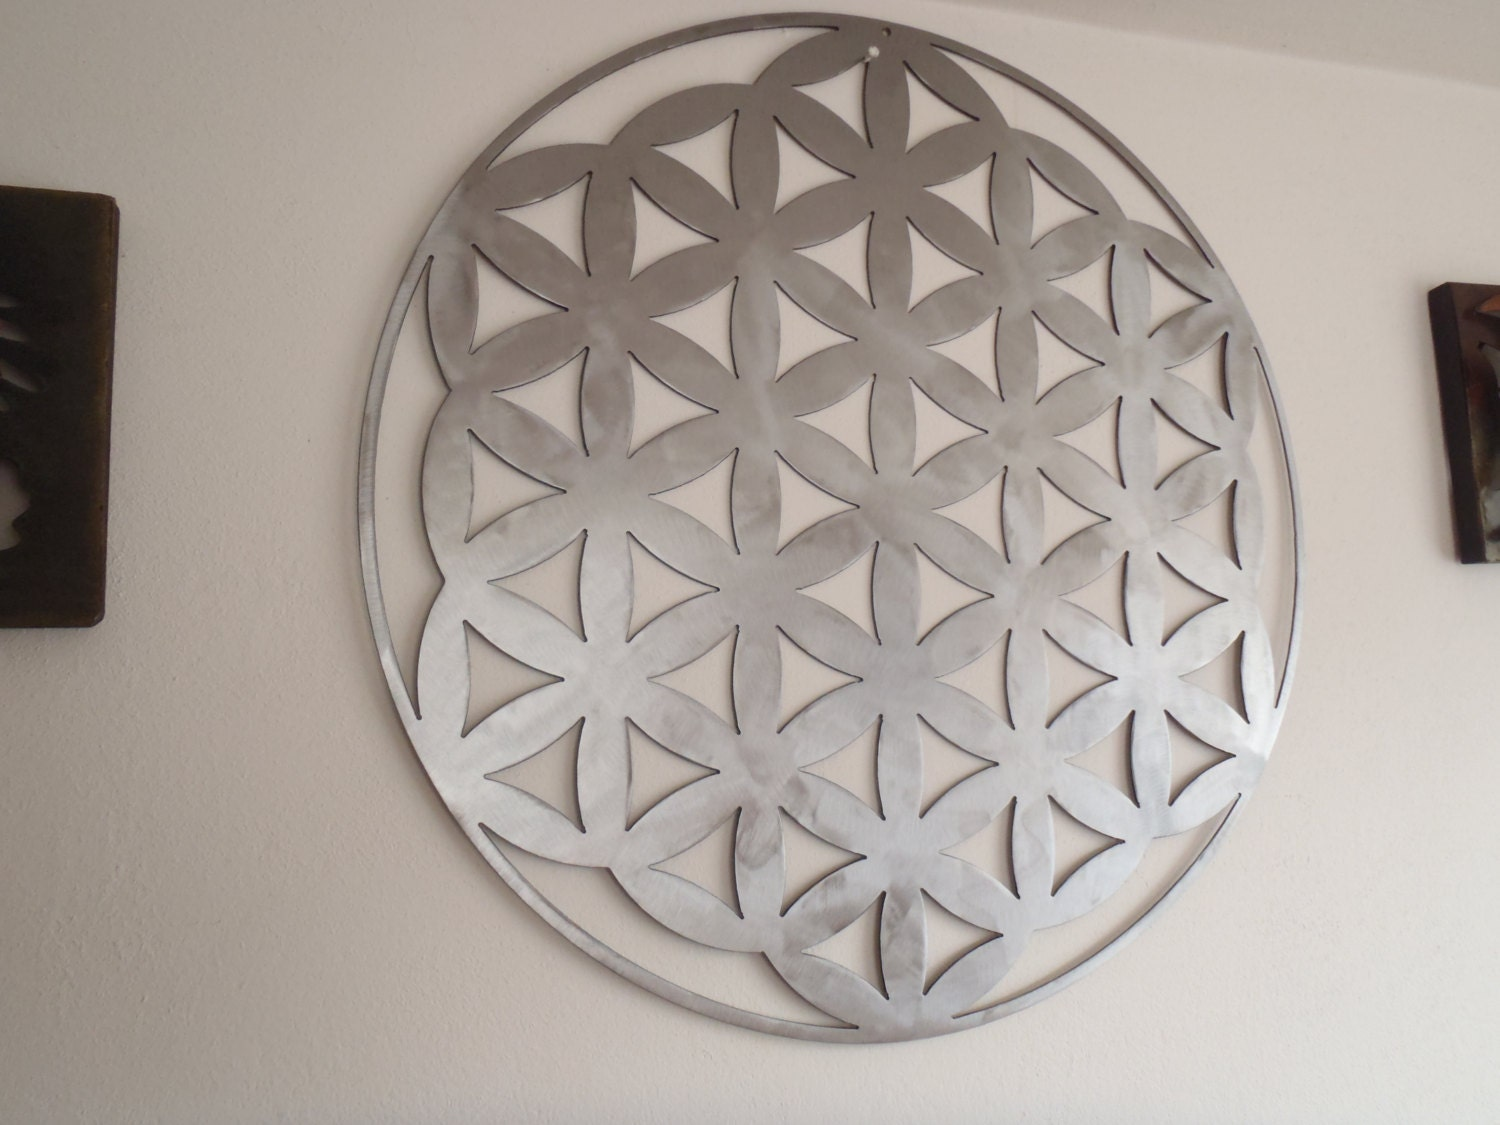 Flower of lifebrushed steel metal wall decor metal art for Metal flower wall art